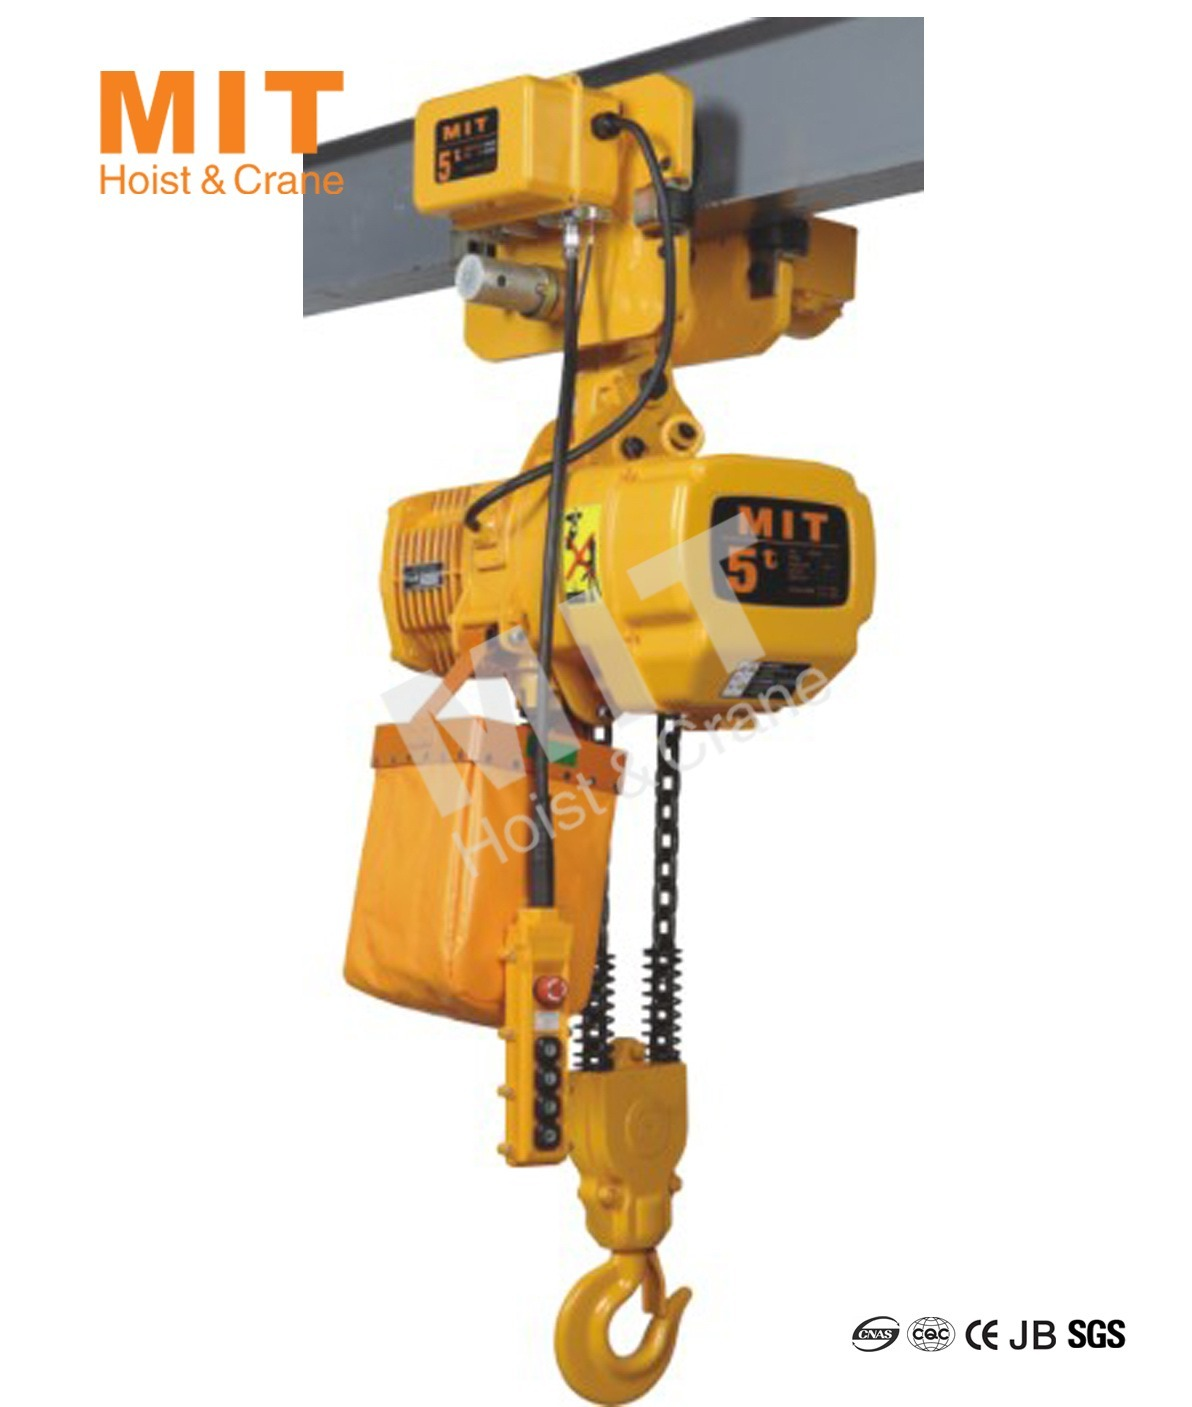 Pin Electric Chain Hoists On Pinterest